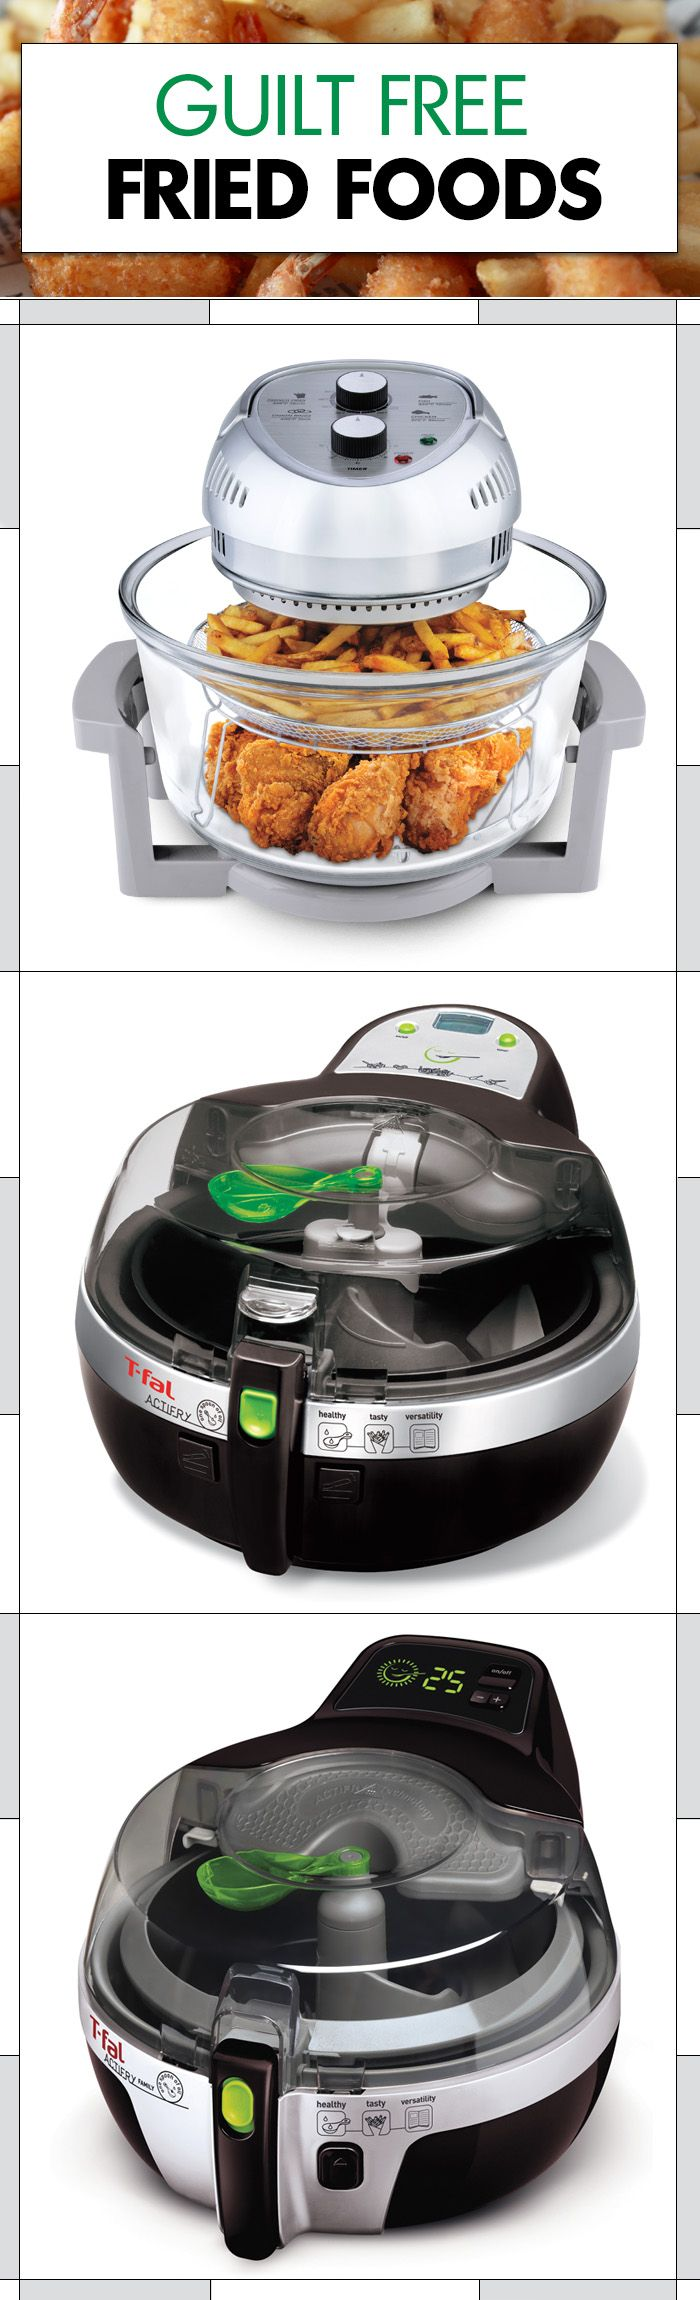 Eat #healthy without depriving yourself of the foods you really want! An Oil-Less Fryer helps eliminate unnecessary oil (and guilt) from your favourite fried foods. and we sell right in our store!!!!